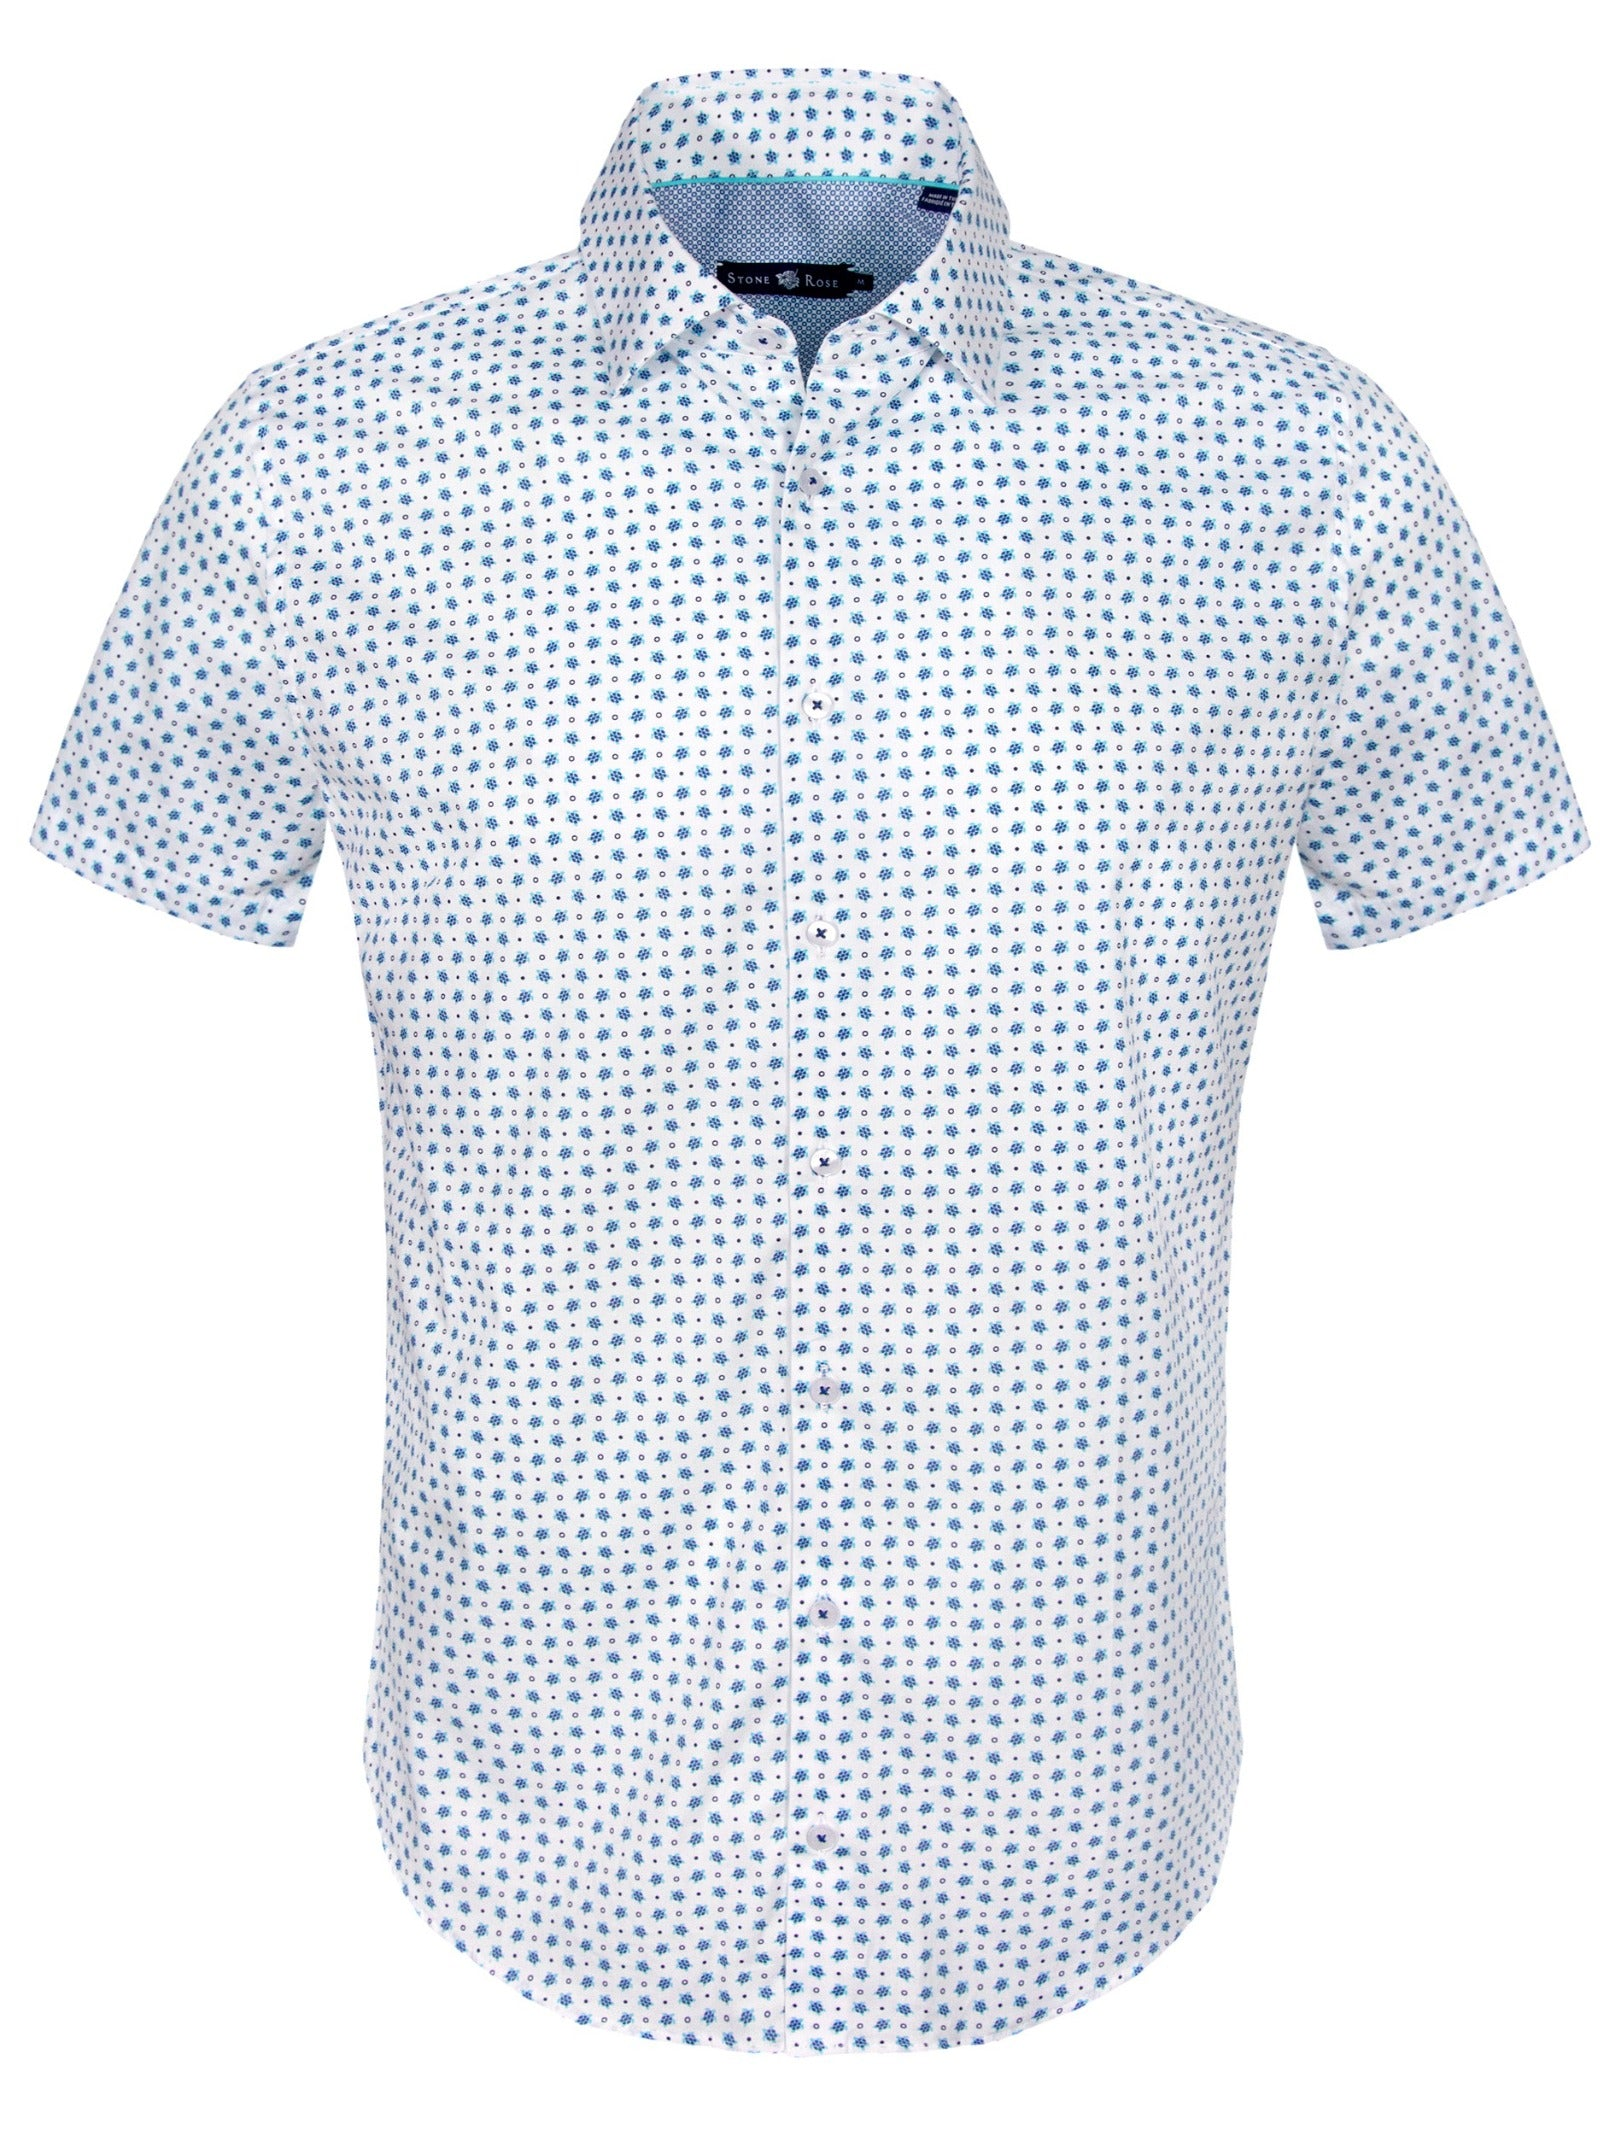 White Turtle Print Short Sleeve Shirt